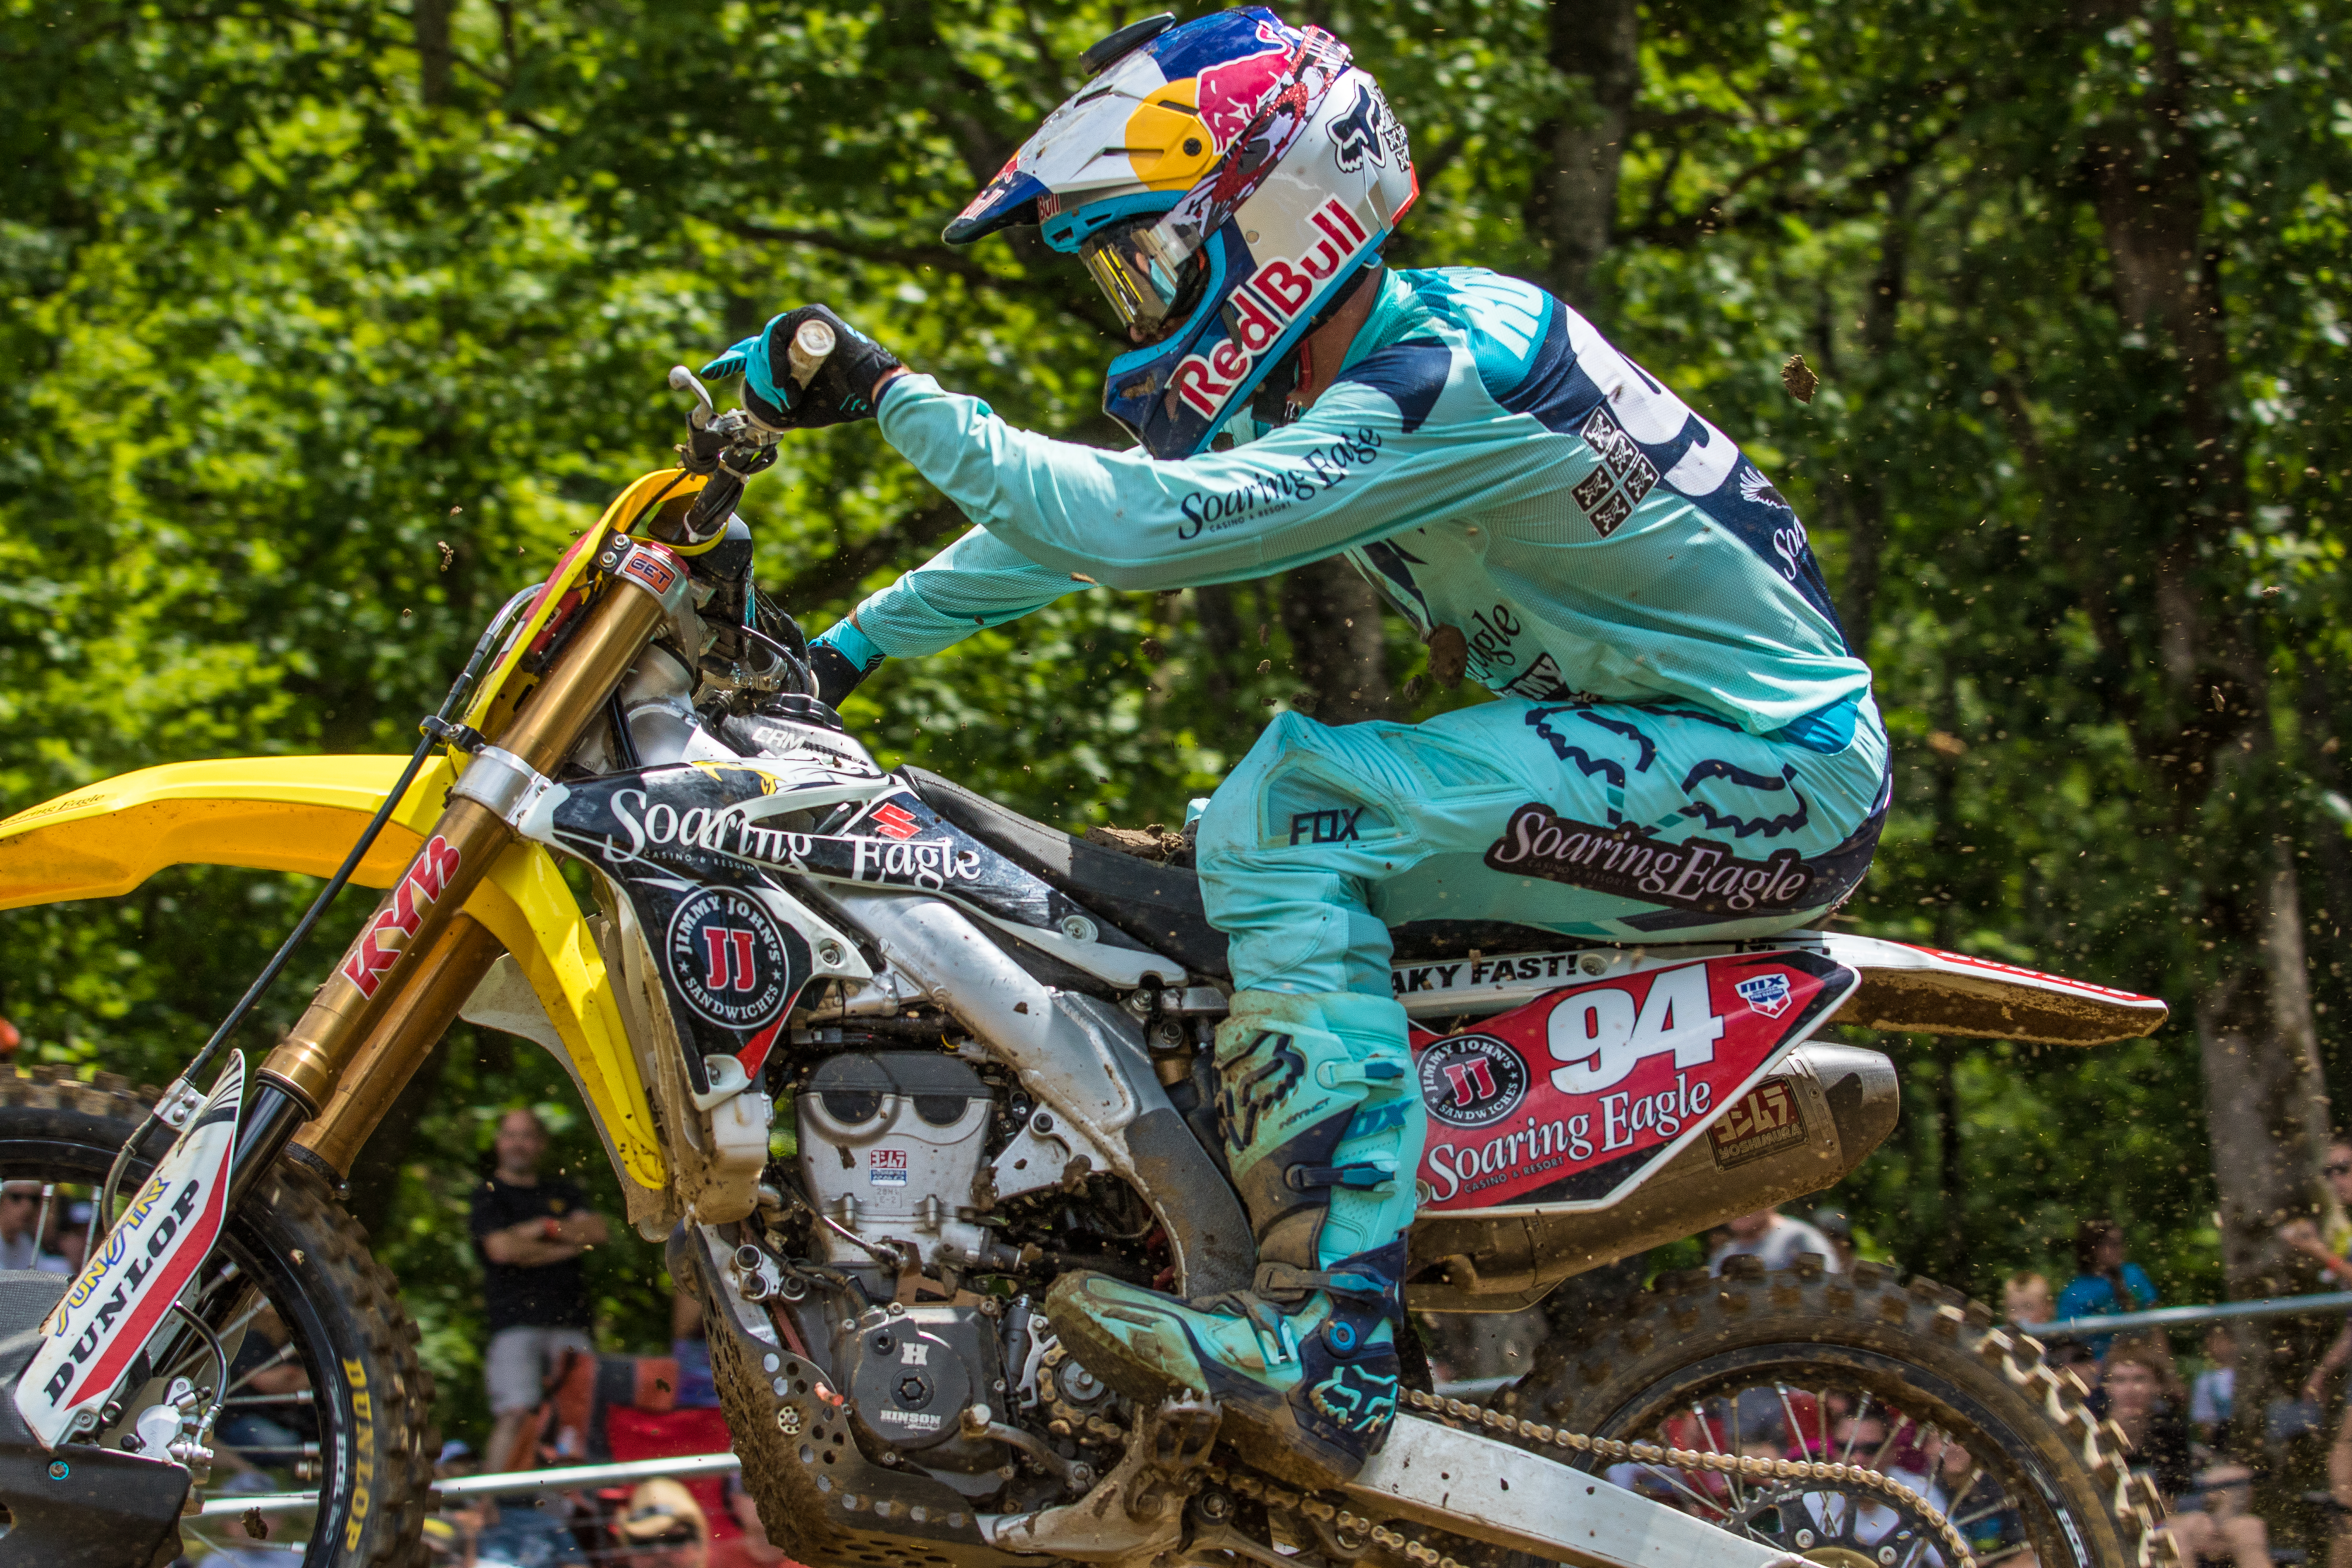 Yes Ken Roczen proved to be a dynamic catalyst for the world of motocross.  Just as interesting was his machine fbfc0b5f70